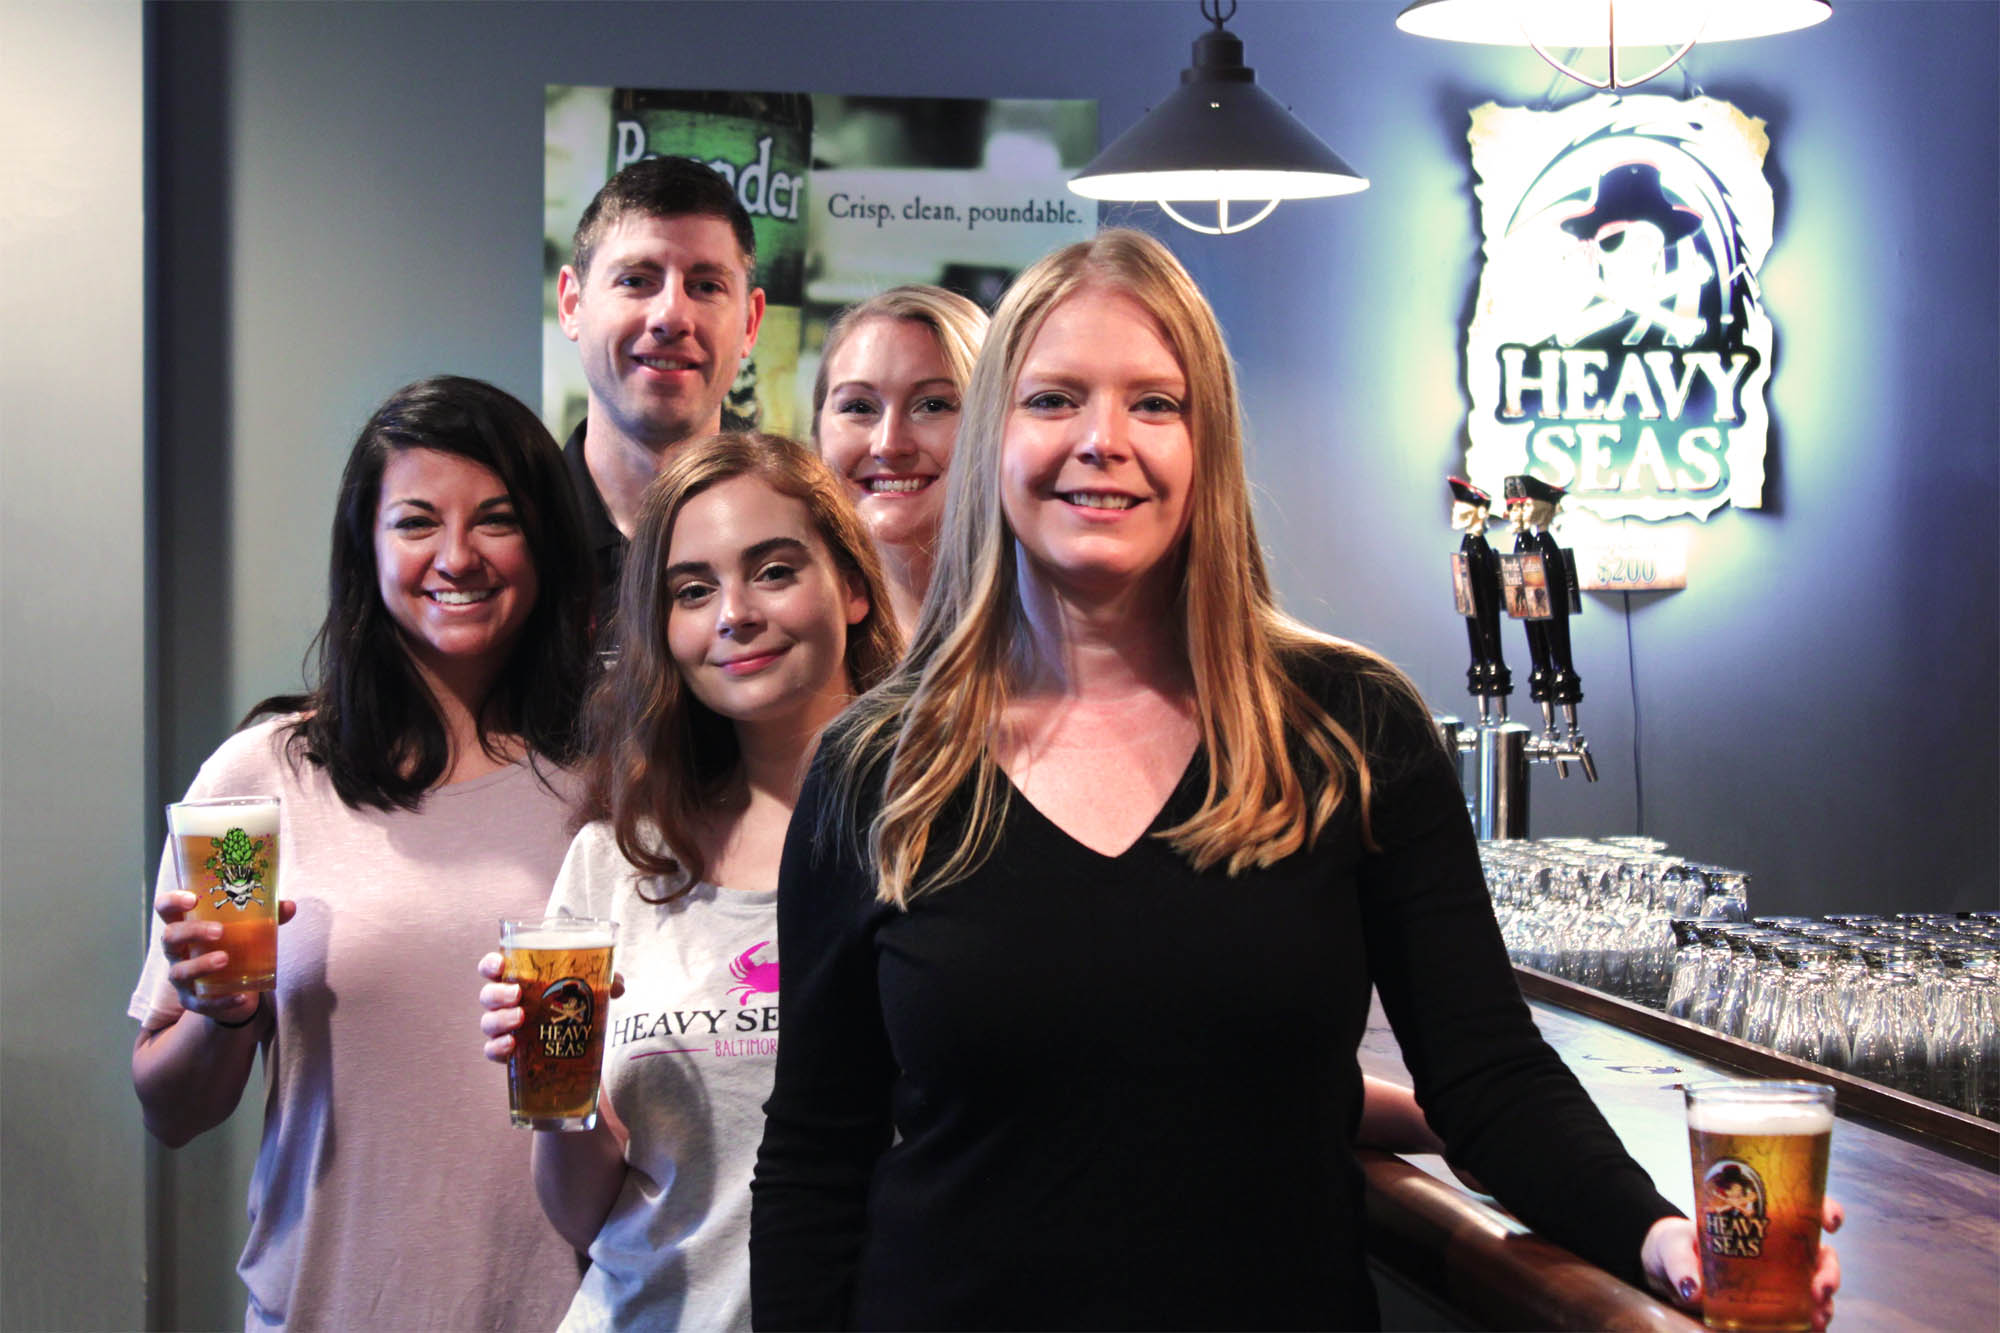 Pictured (left to right, back to front): Tristan Gilbert, Brand Manager; Christine Shaffer, Communications Specialist; Caroline Sisson, Events Coordinator; Amanda Zivkovic, Events Coordinator; Sarah West, Director of Marketing & Hospitality